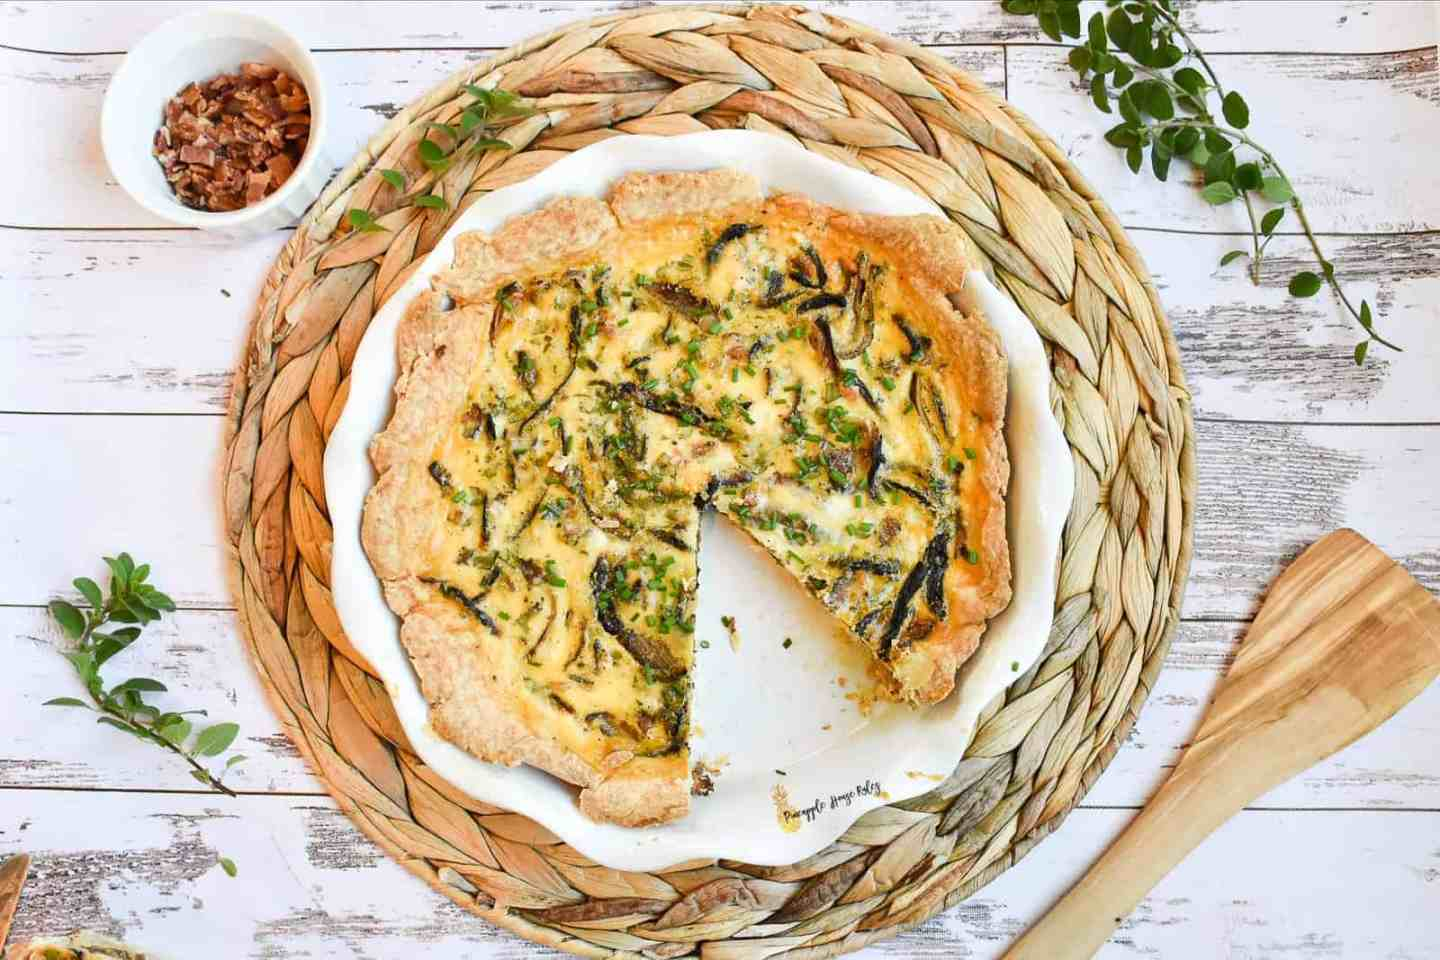 Caramelized-Onion-and-Bacon-Quiche-homemade-crust